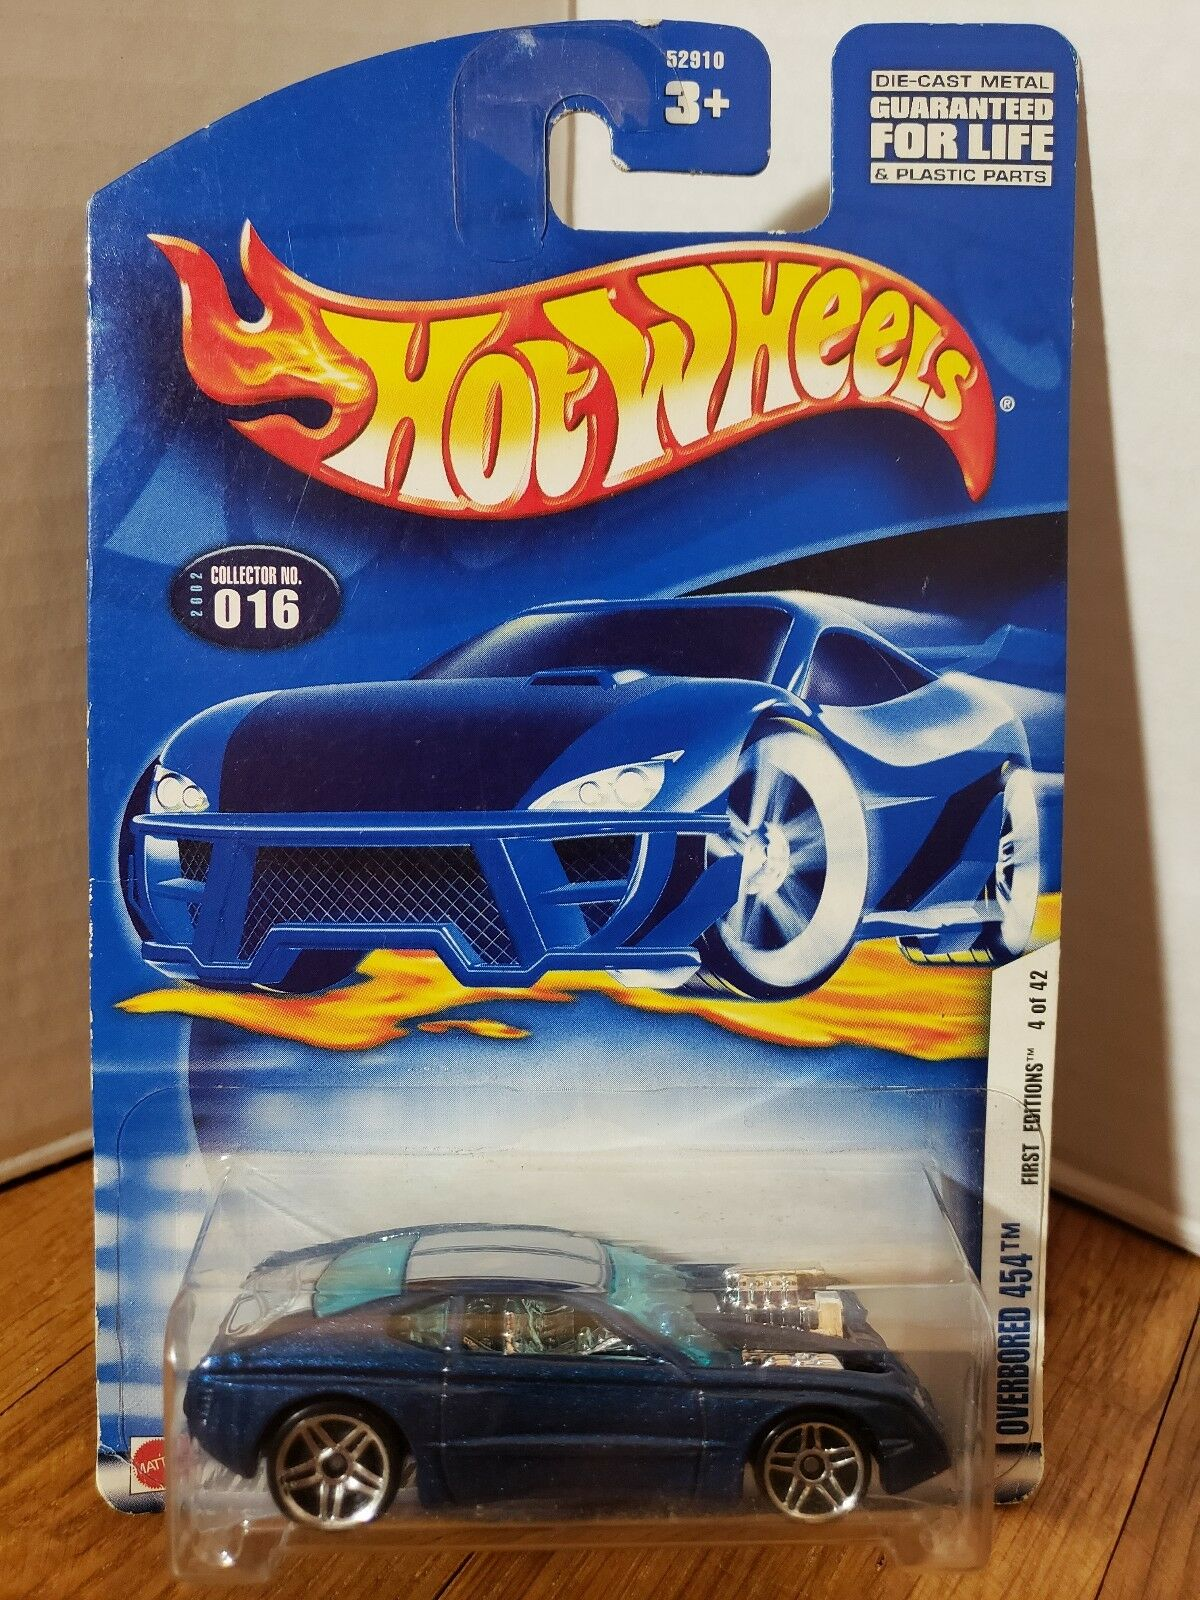 Hot Wheels 080 2000 First Edition Car Toy Blue for sale online